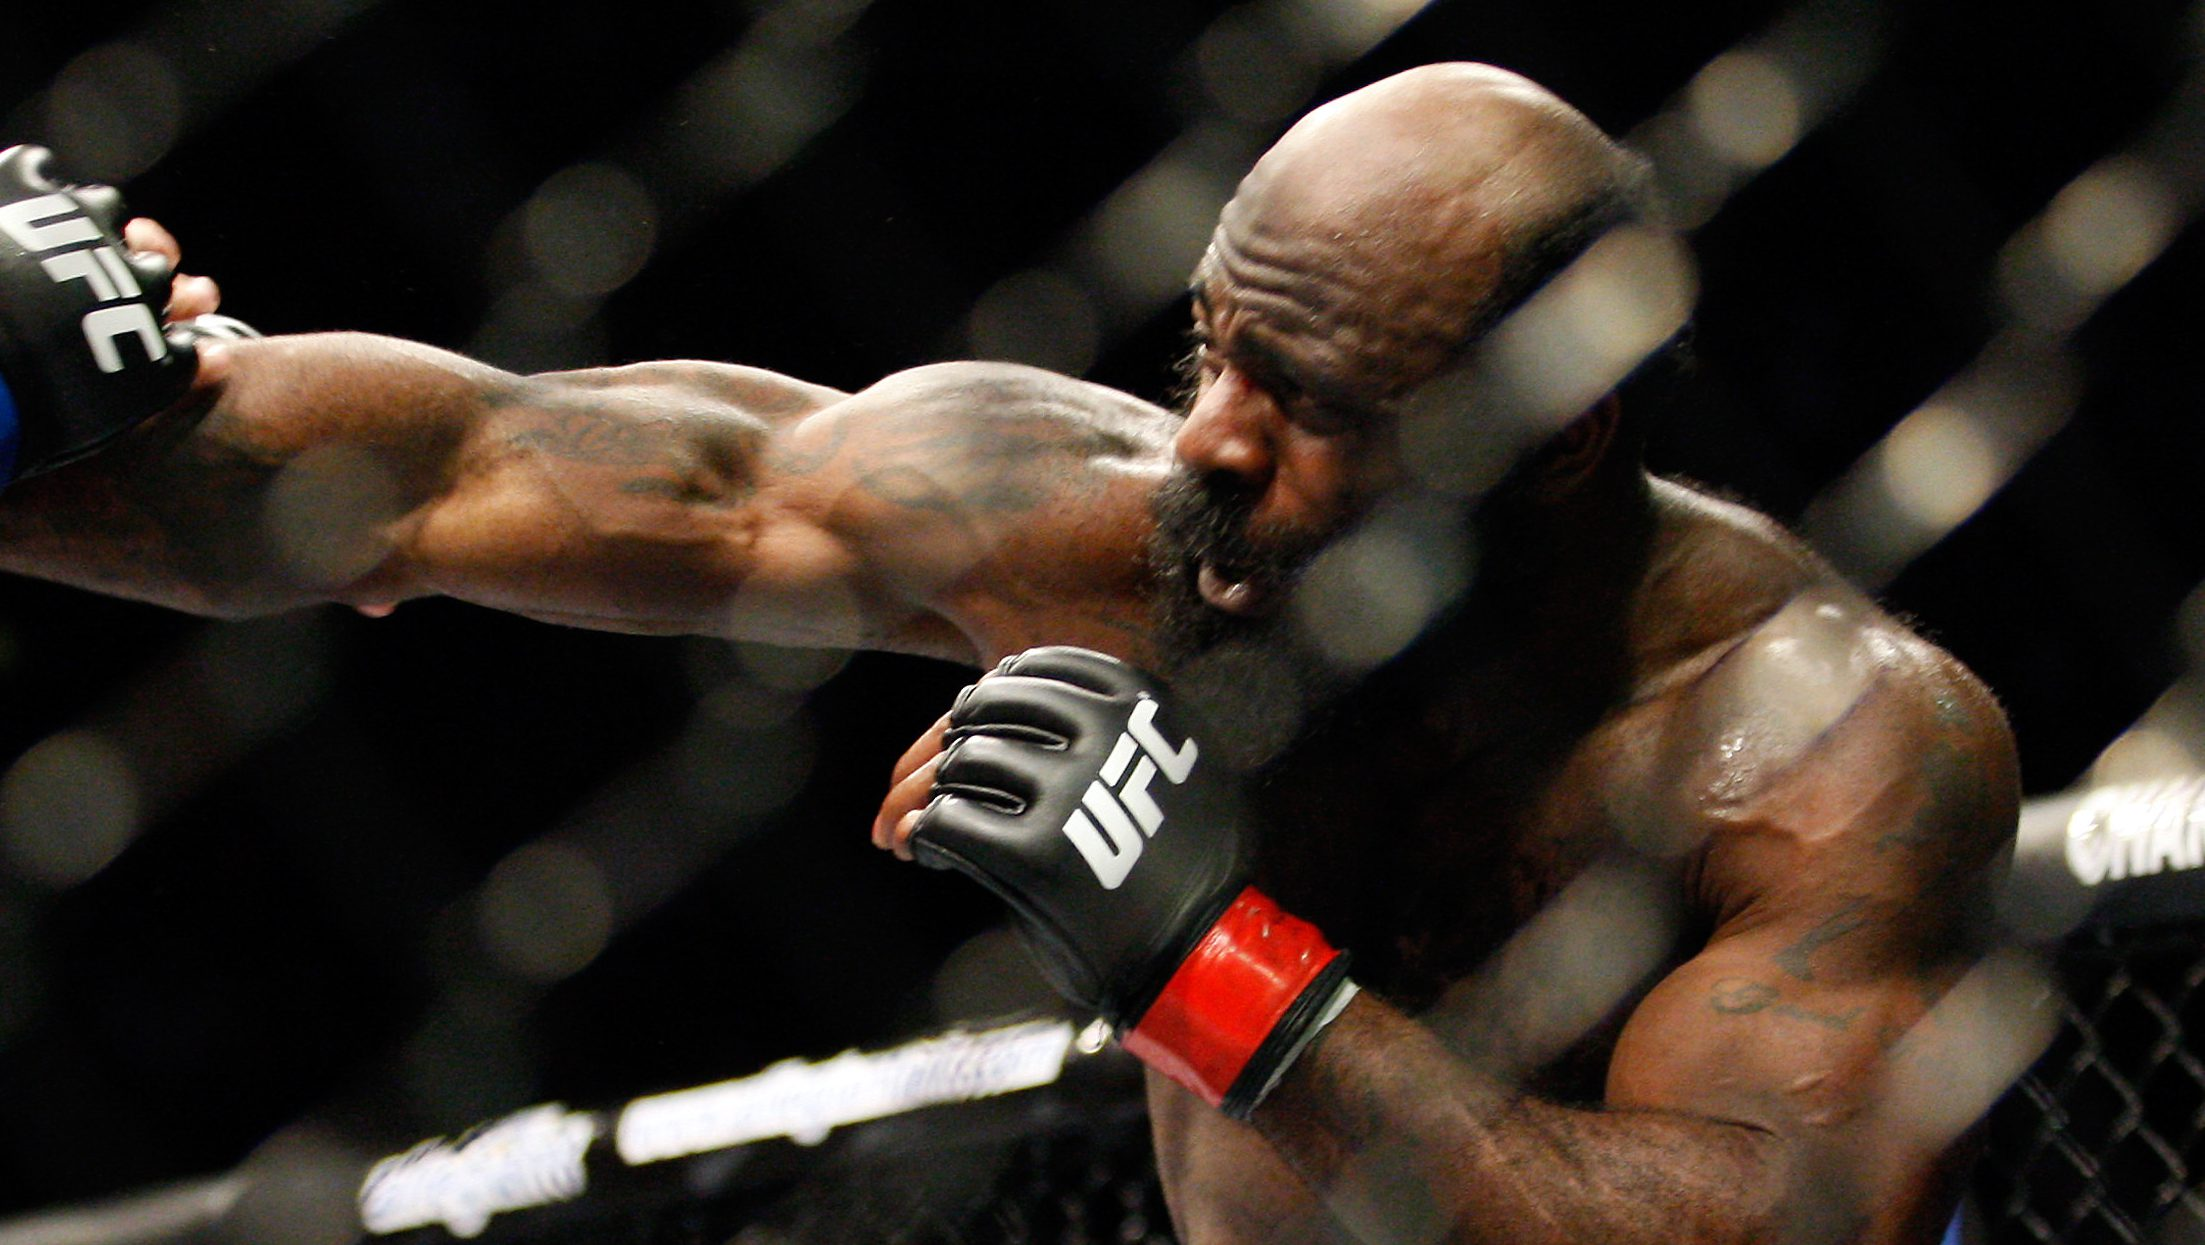 watch kimbo slice last final mma fight bellator 149 dada 5000